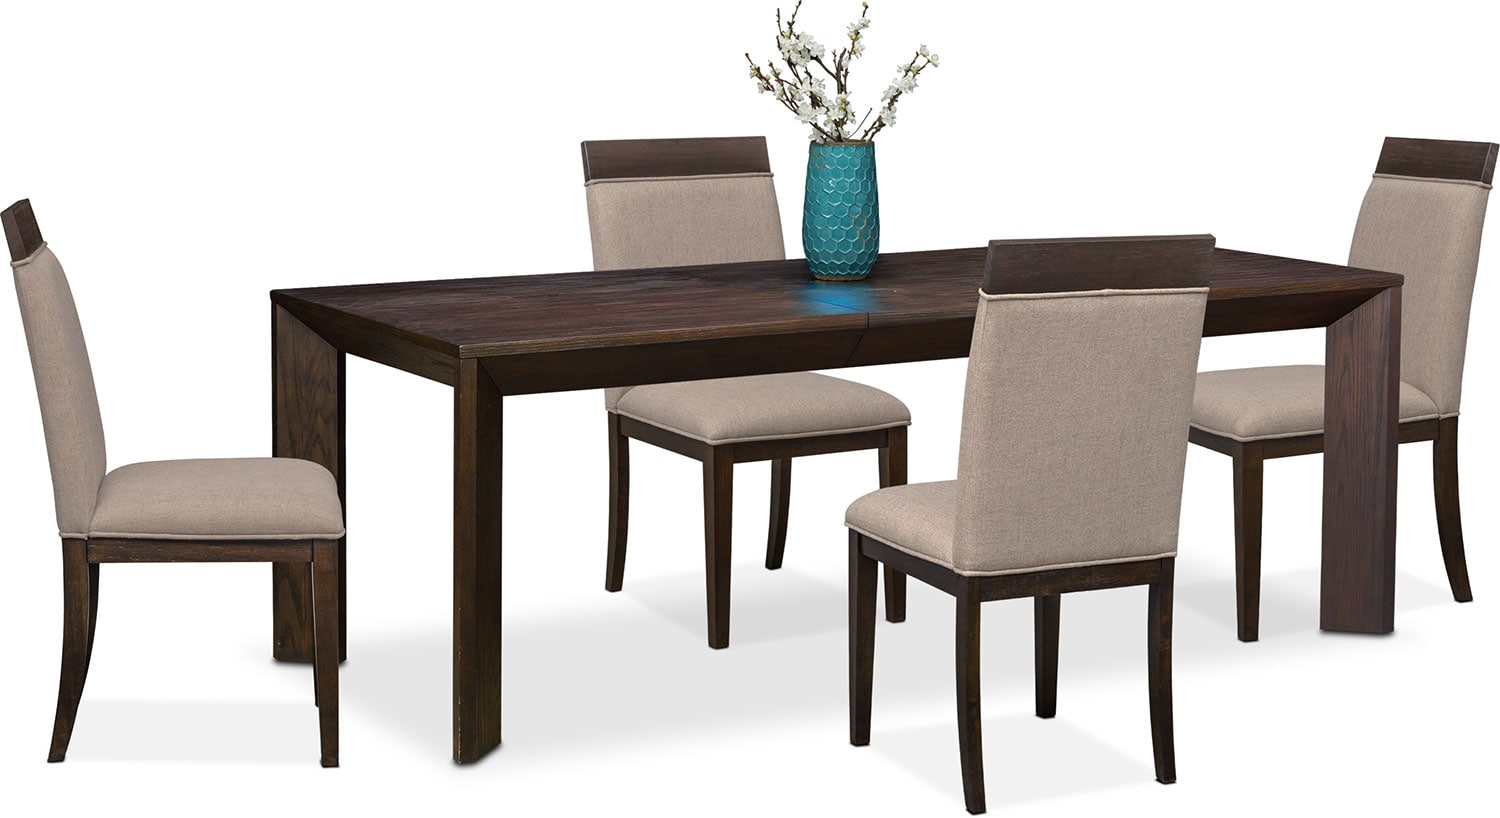 Gavin Table and 4 Side Chairs - Brownstone